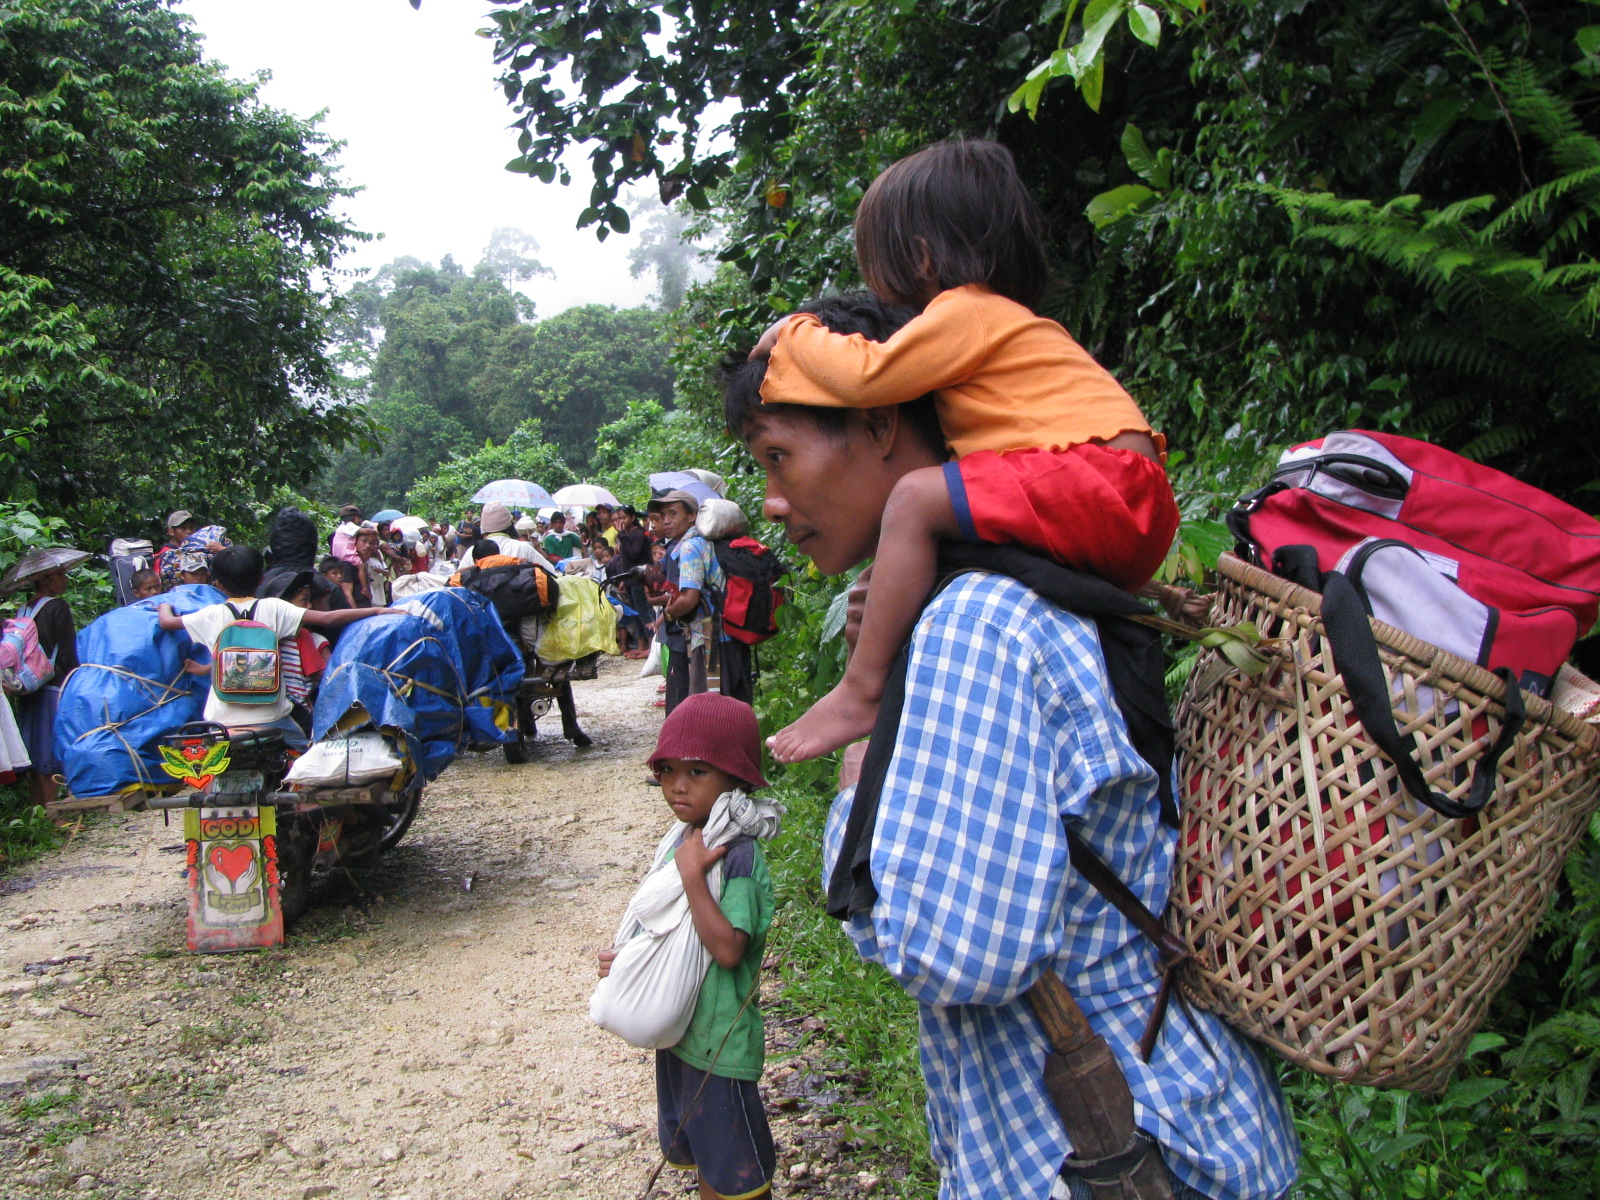 conflict in mindanao For decades, there has been conflicting ethnicities and interests in the mindanao region of the philippines the most recent and pressing conflict in mindanao has been between muslim rebels and the state/country.